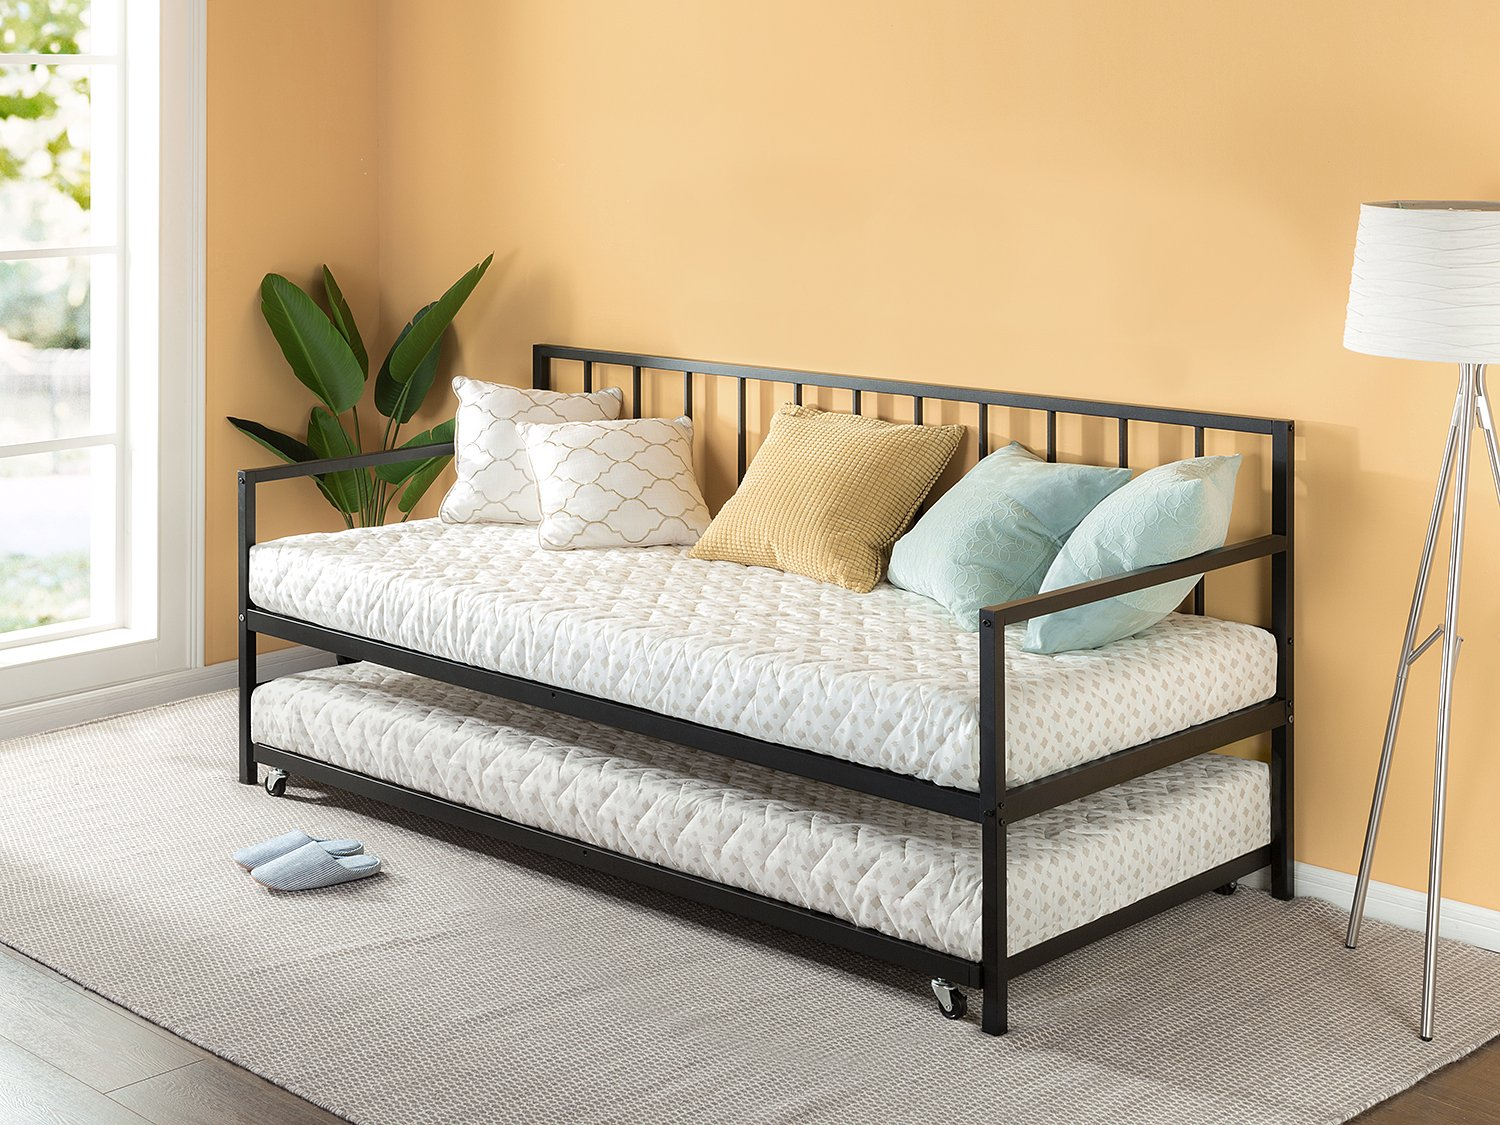 Zinus Newport Twin Daybed and Trundle Set / Premium Steel Slat Support / Daybed